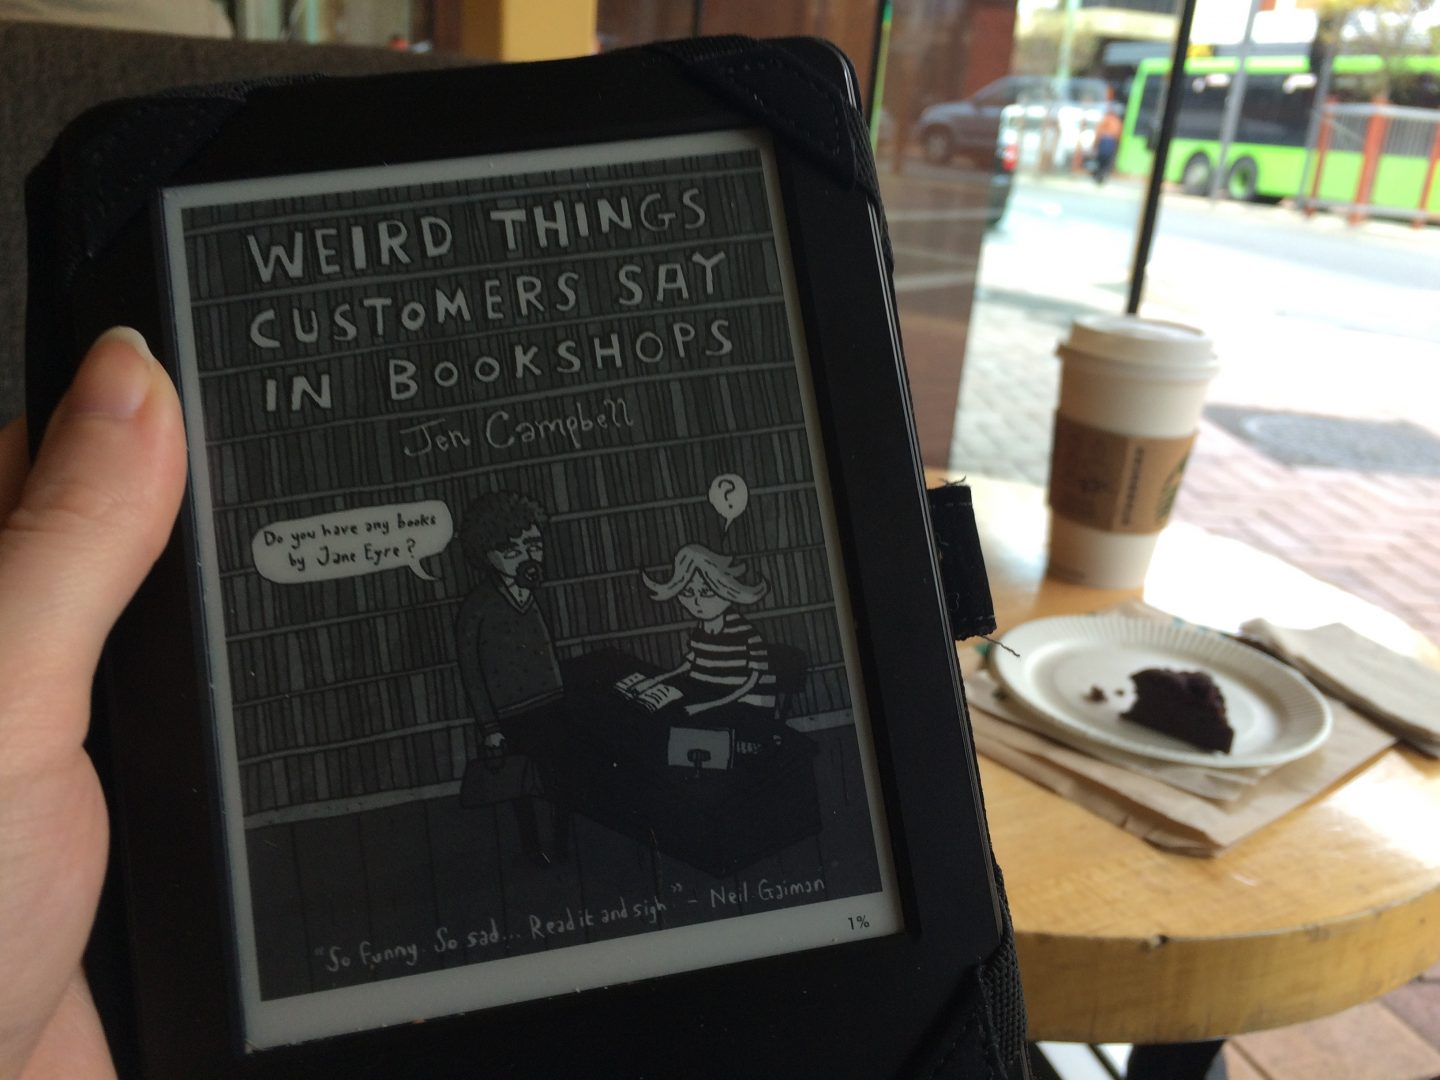 Weird Things Customers Say In Bookshops by Jen Campbell Review